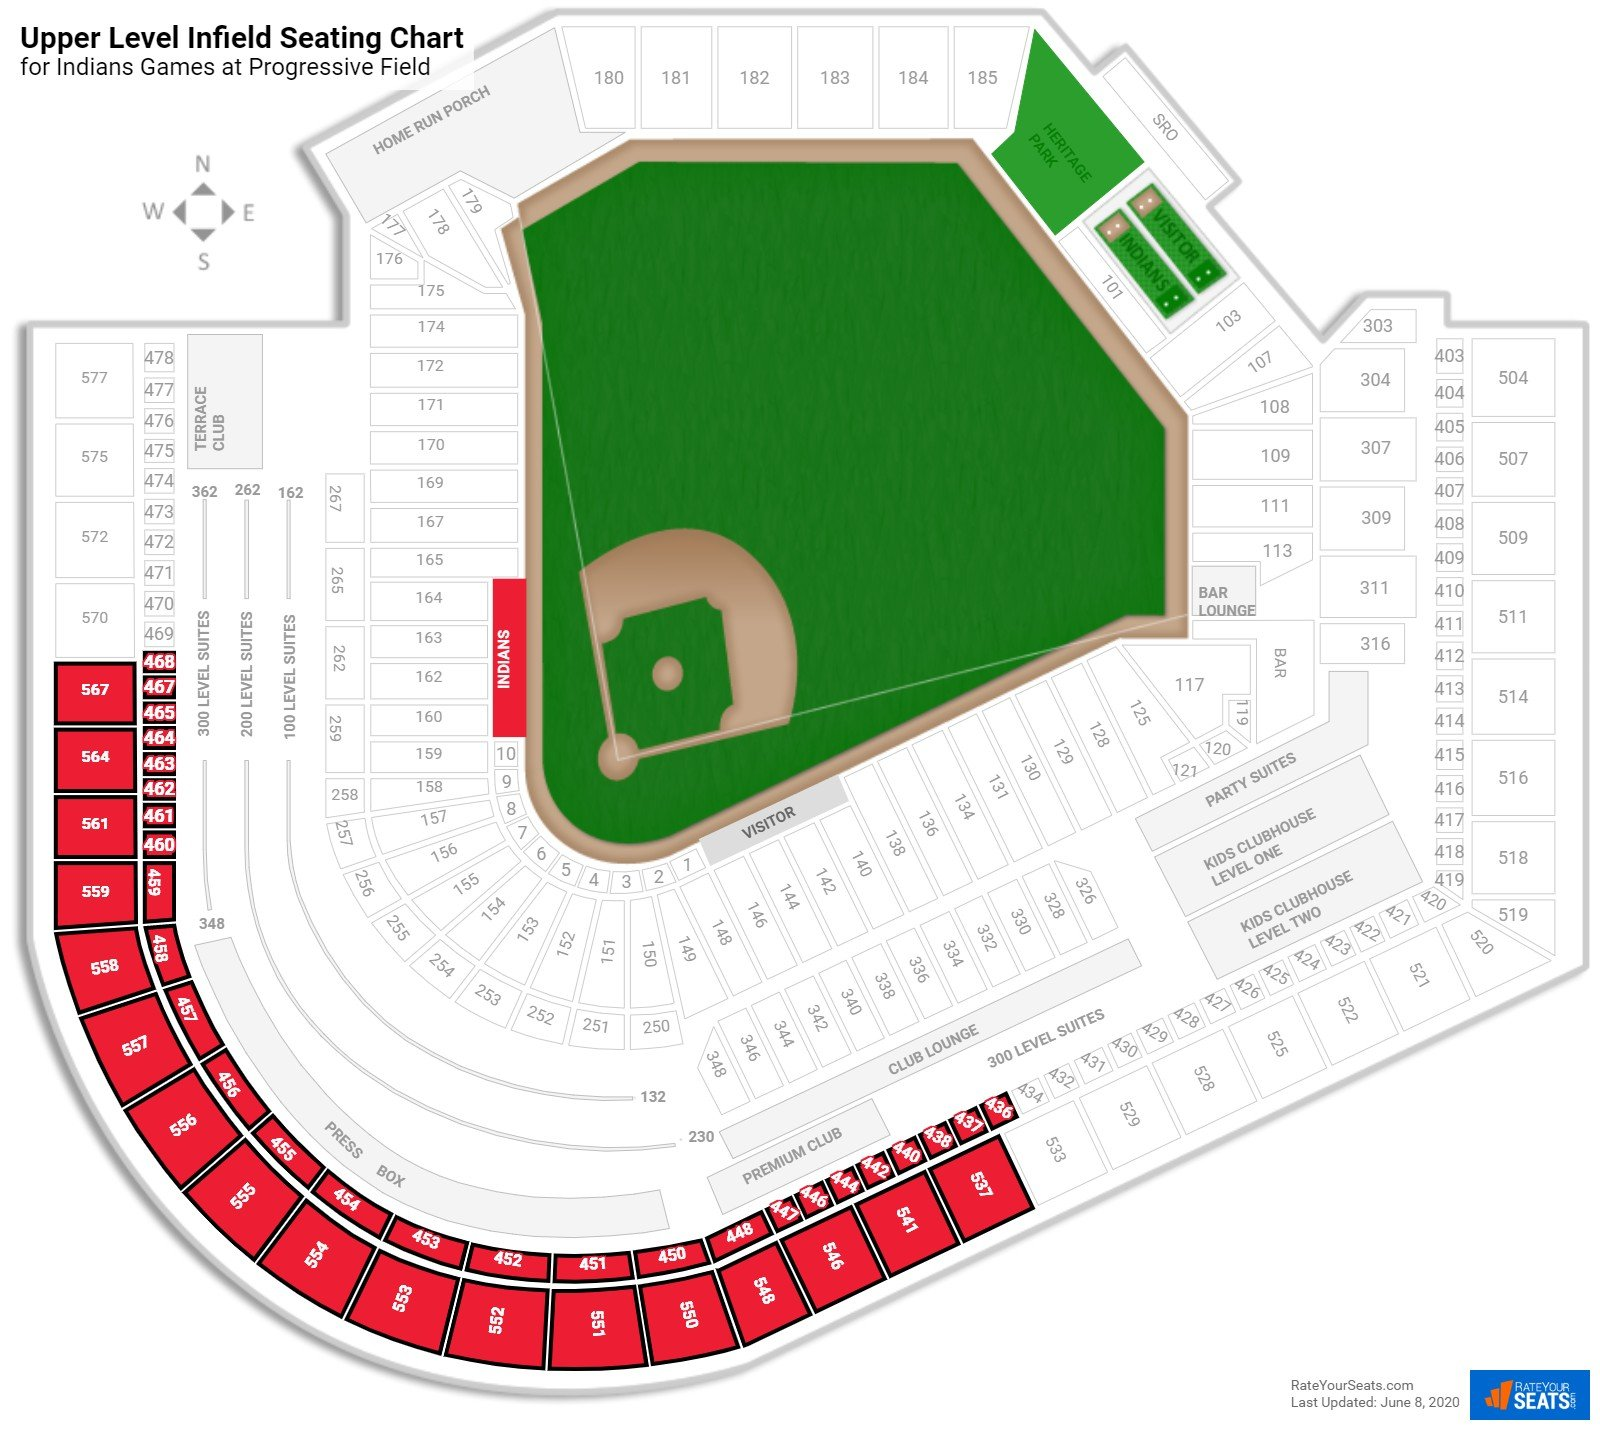 Progressive Field Upper Level Infield seating chart